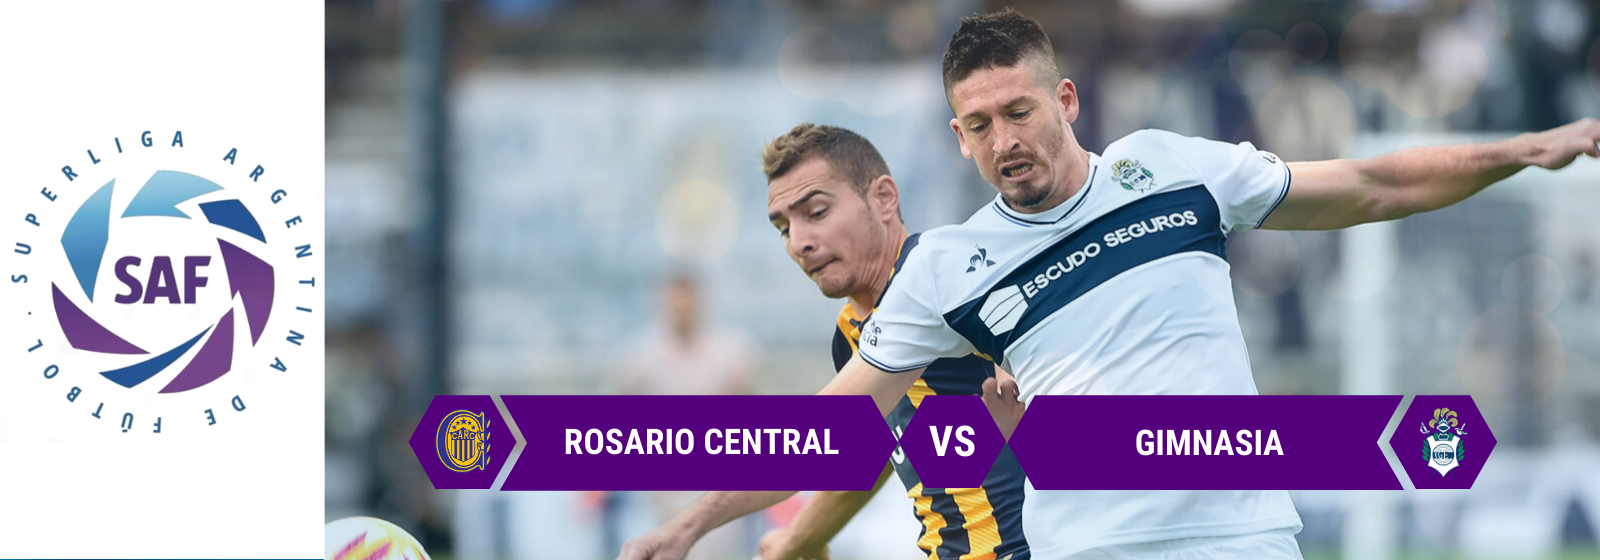 Asianconnect: Rosario Central vs Gimnasia Odds for February 15, 2020